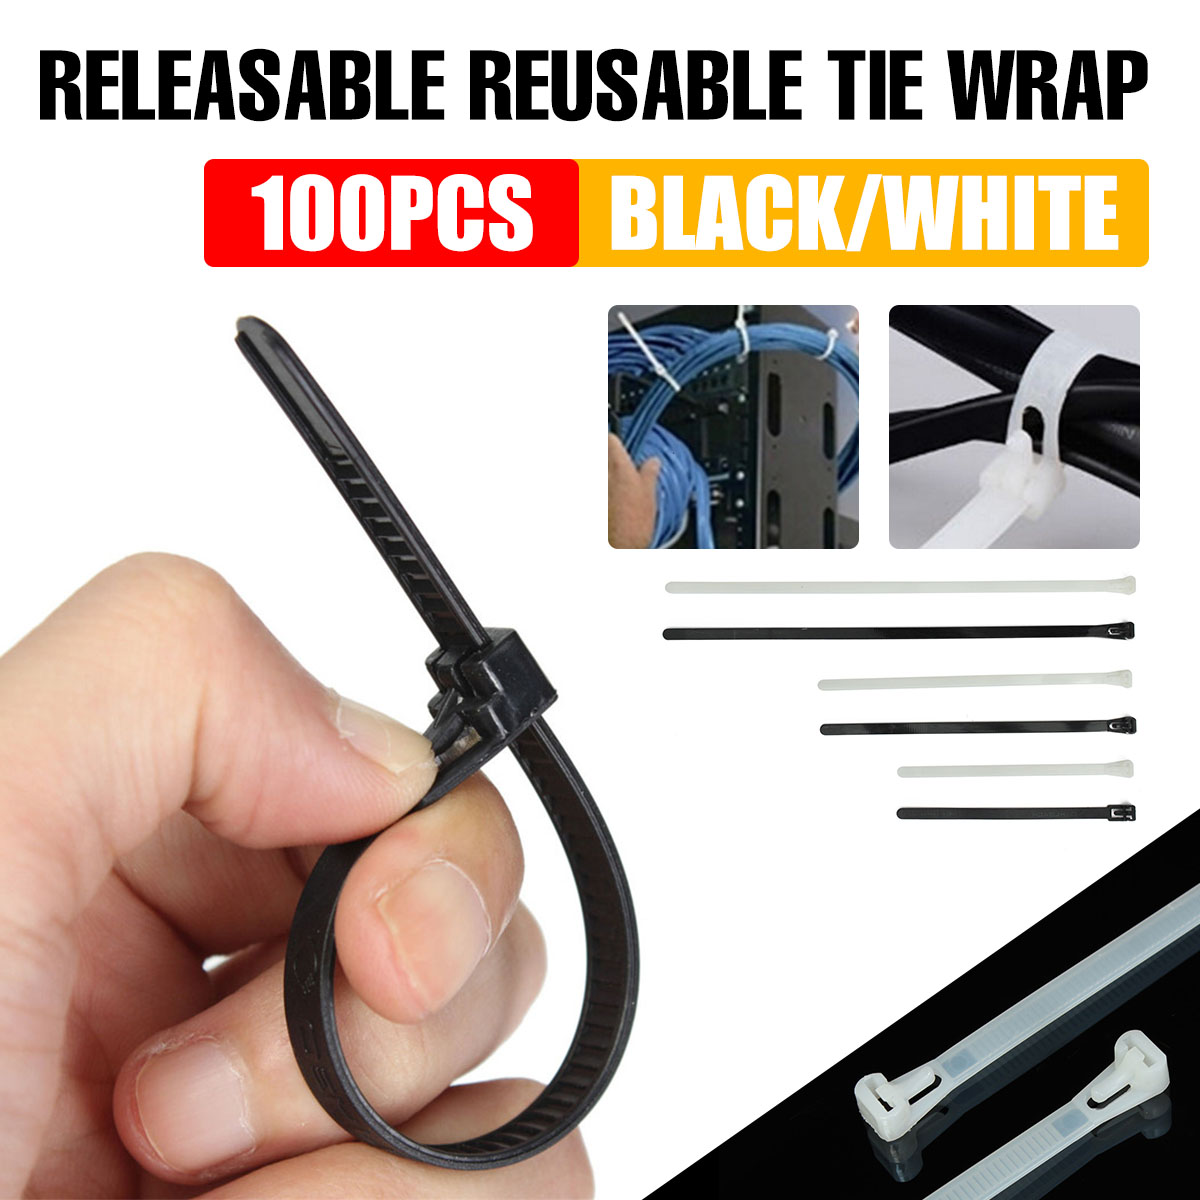 100 X STRONG HEAVY DUTY RE-USABLE RELEASABLE BLACK CABLE ZIP TIES 7.6mm X 300mm